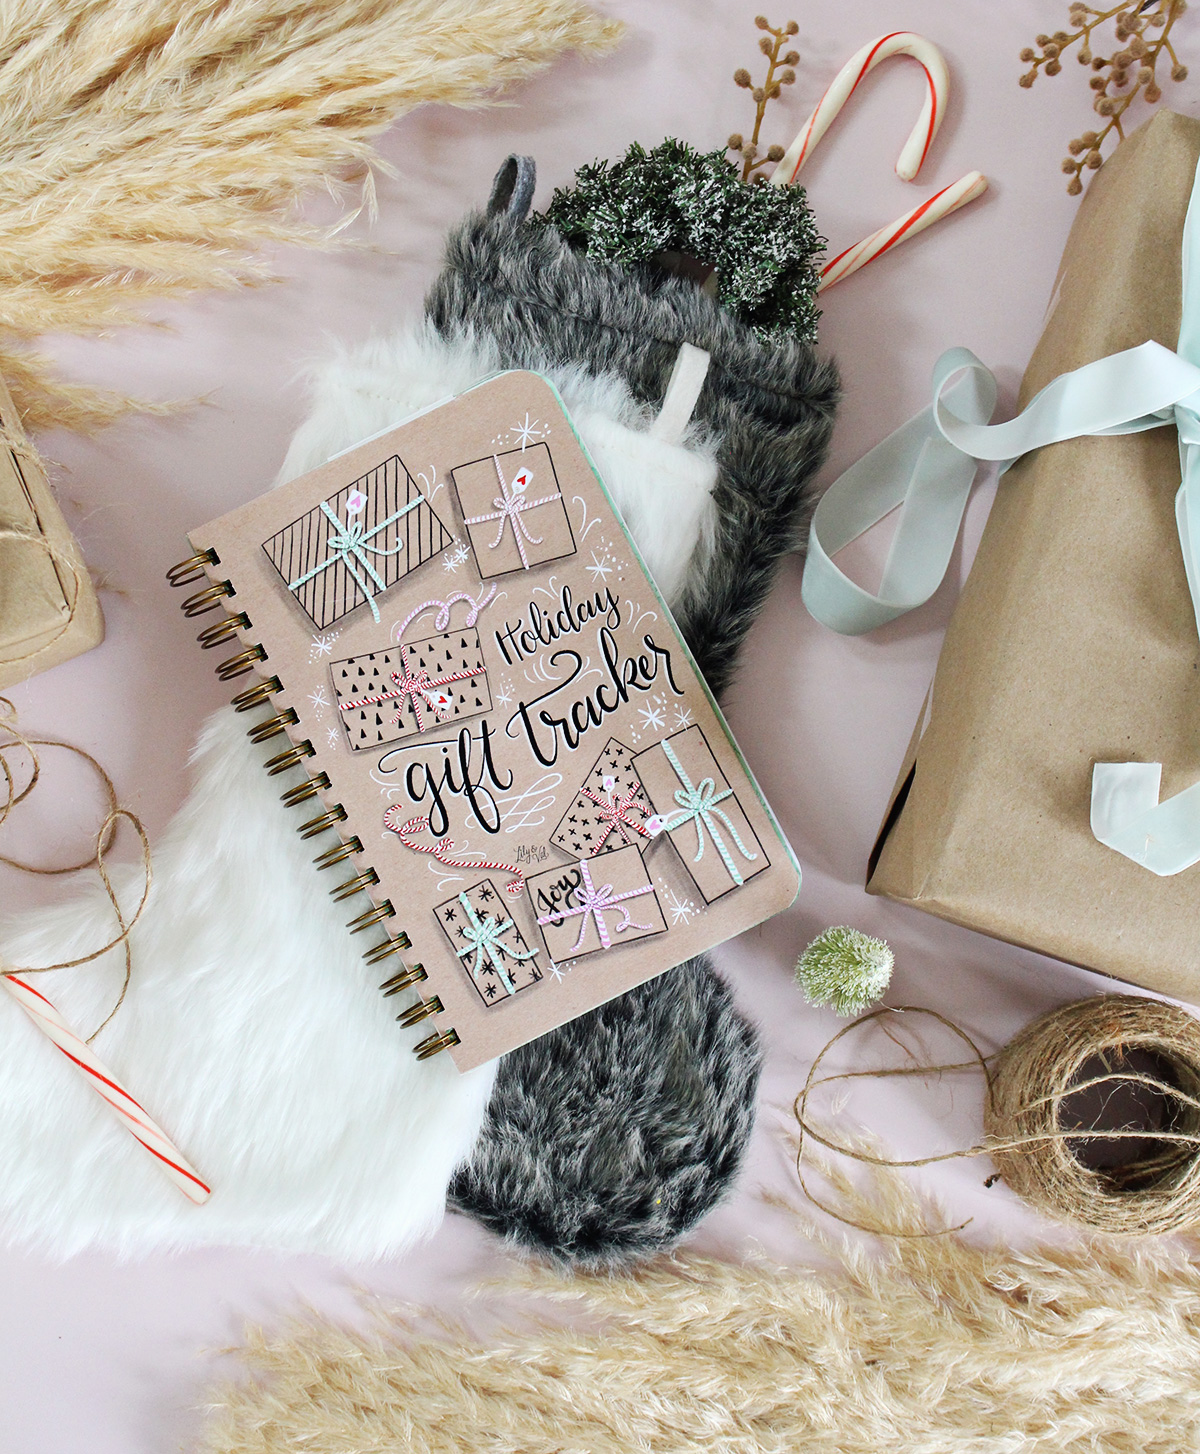 The Holiday Gift Organizer you could use this Christmas | Holiday Gift Tracker Notebook by Lily & Val